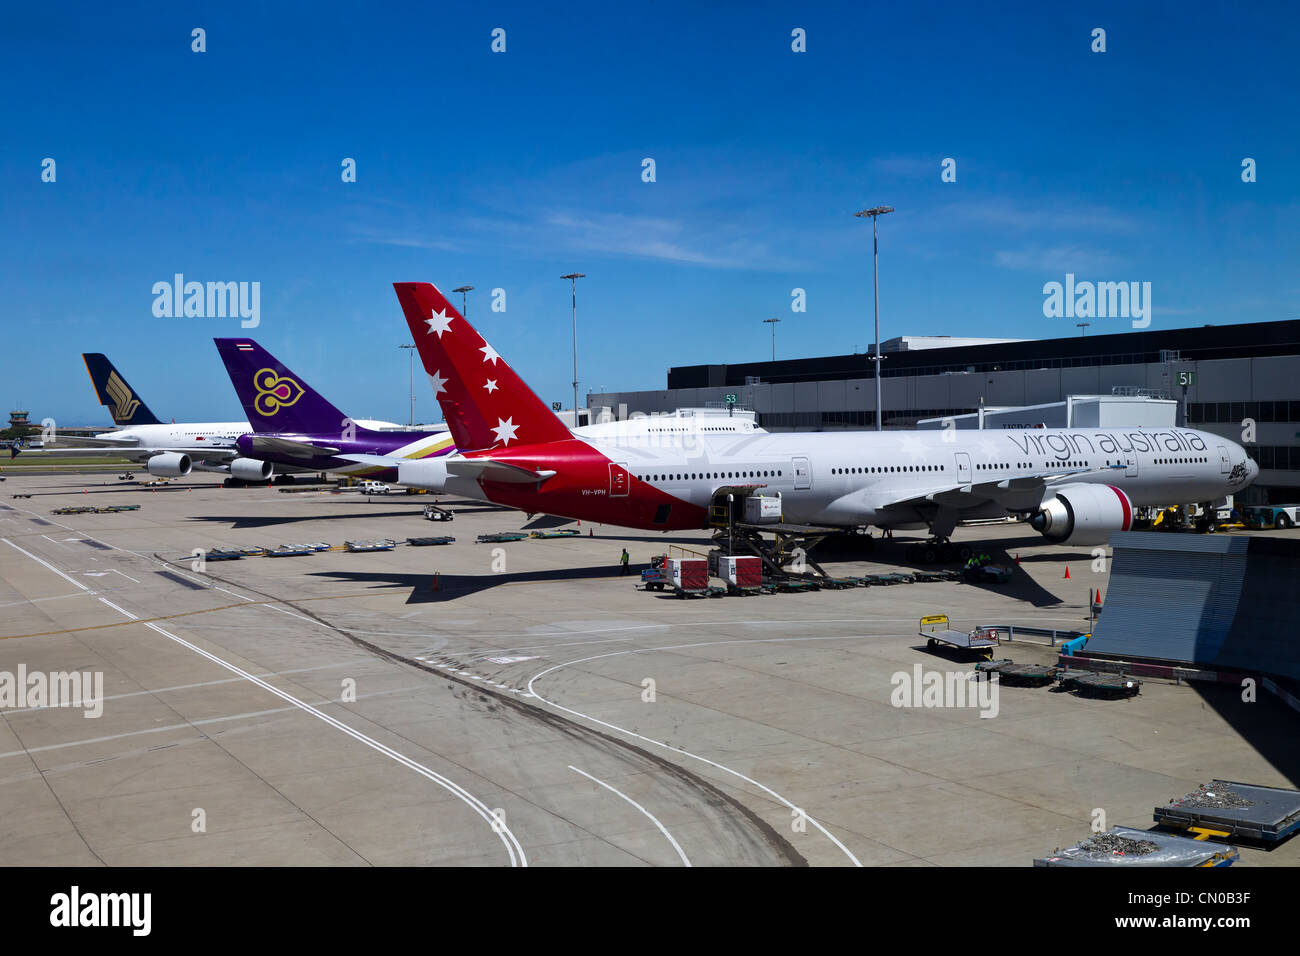 Blue apron singapore - Singapore Airline Thai Airways And Virgin Australia Parked At Sydney Airport Stock Image